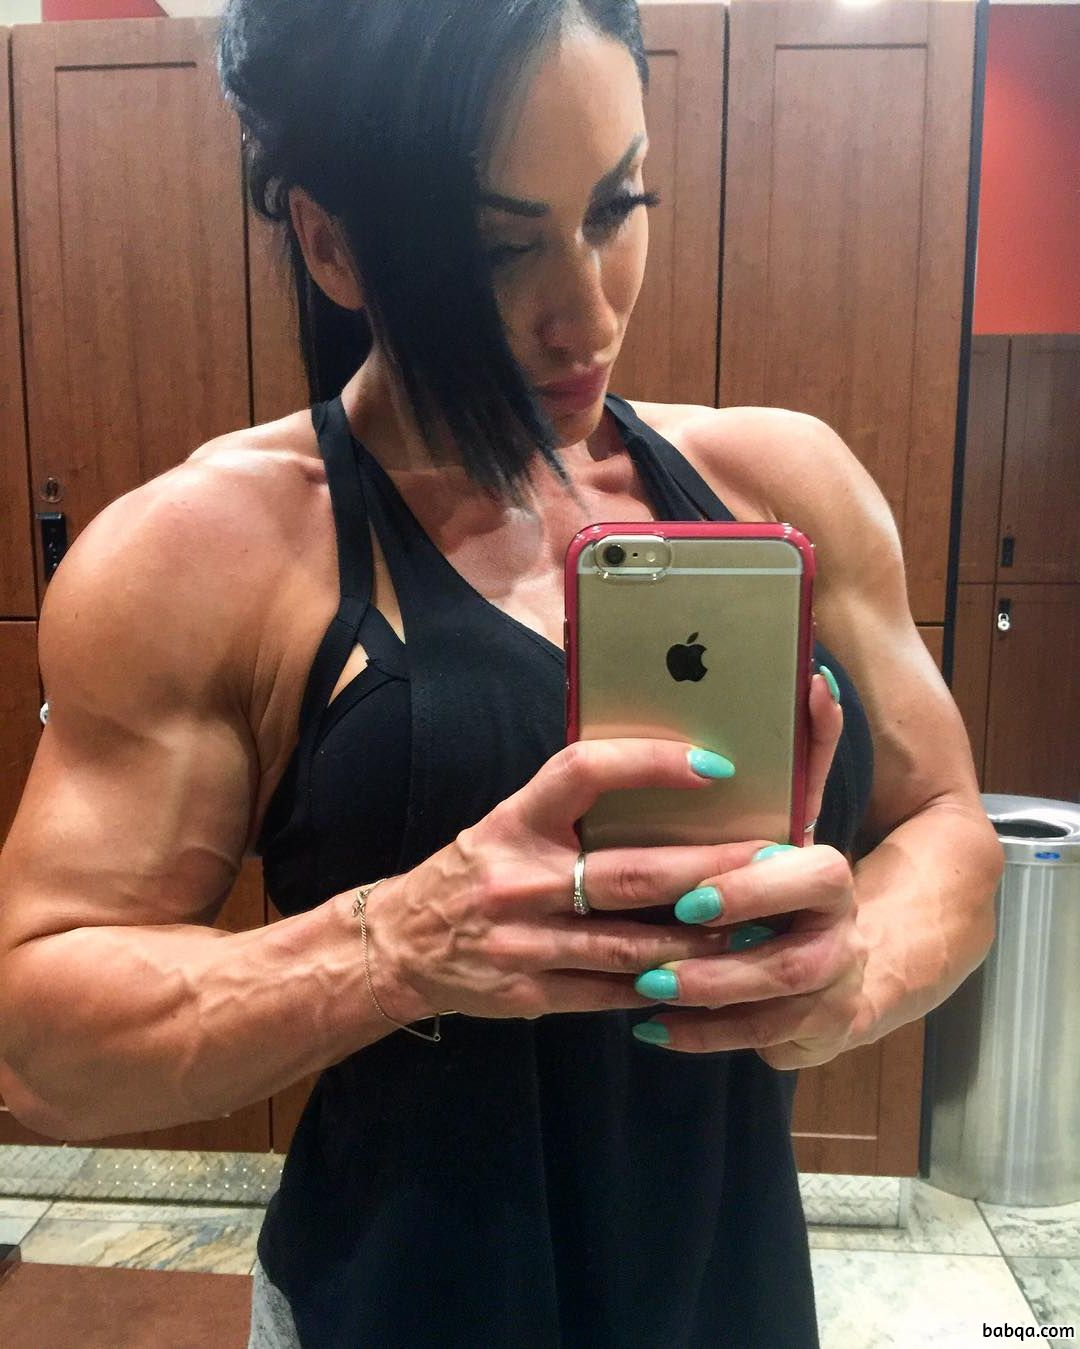 perfect girl with muscle body and toned arms image from facebook